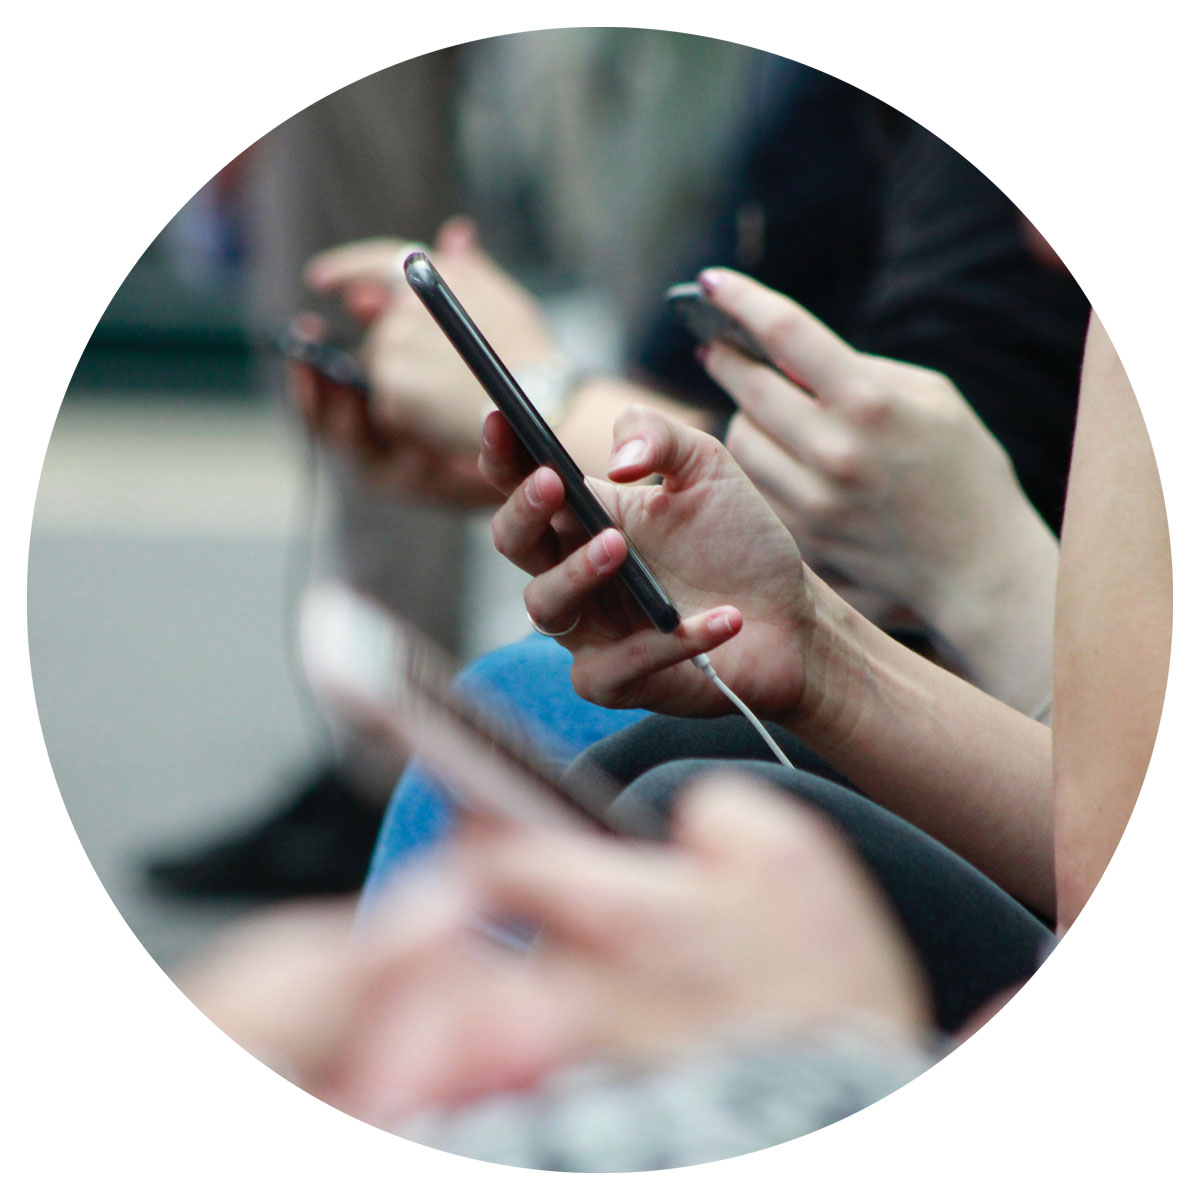 image of hands holding cellphone